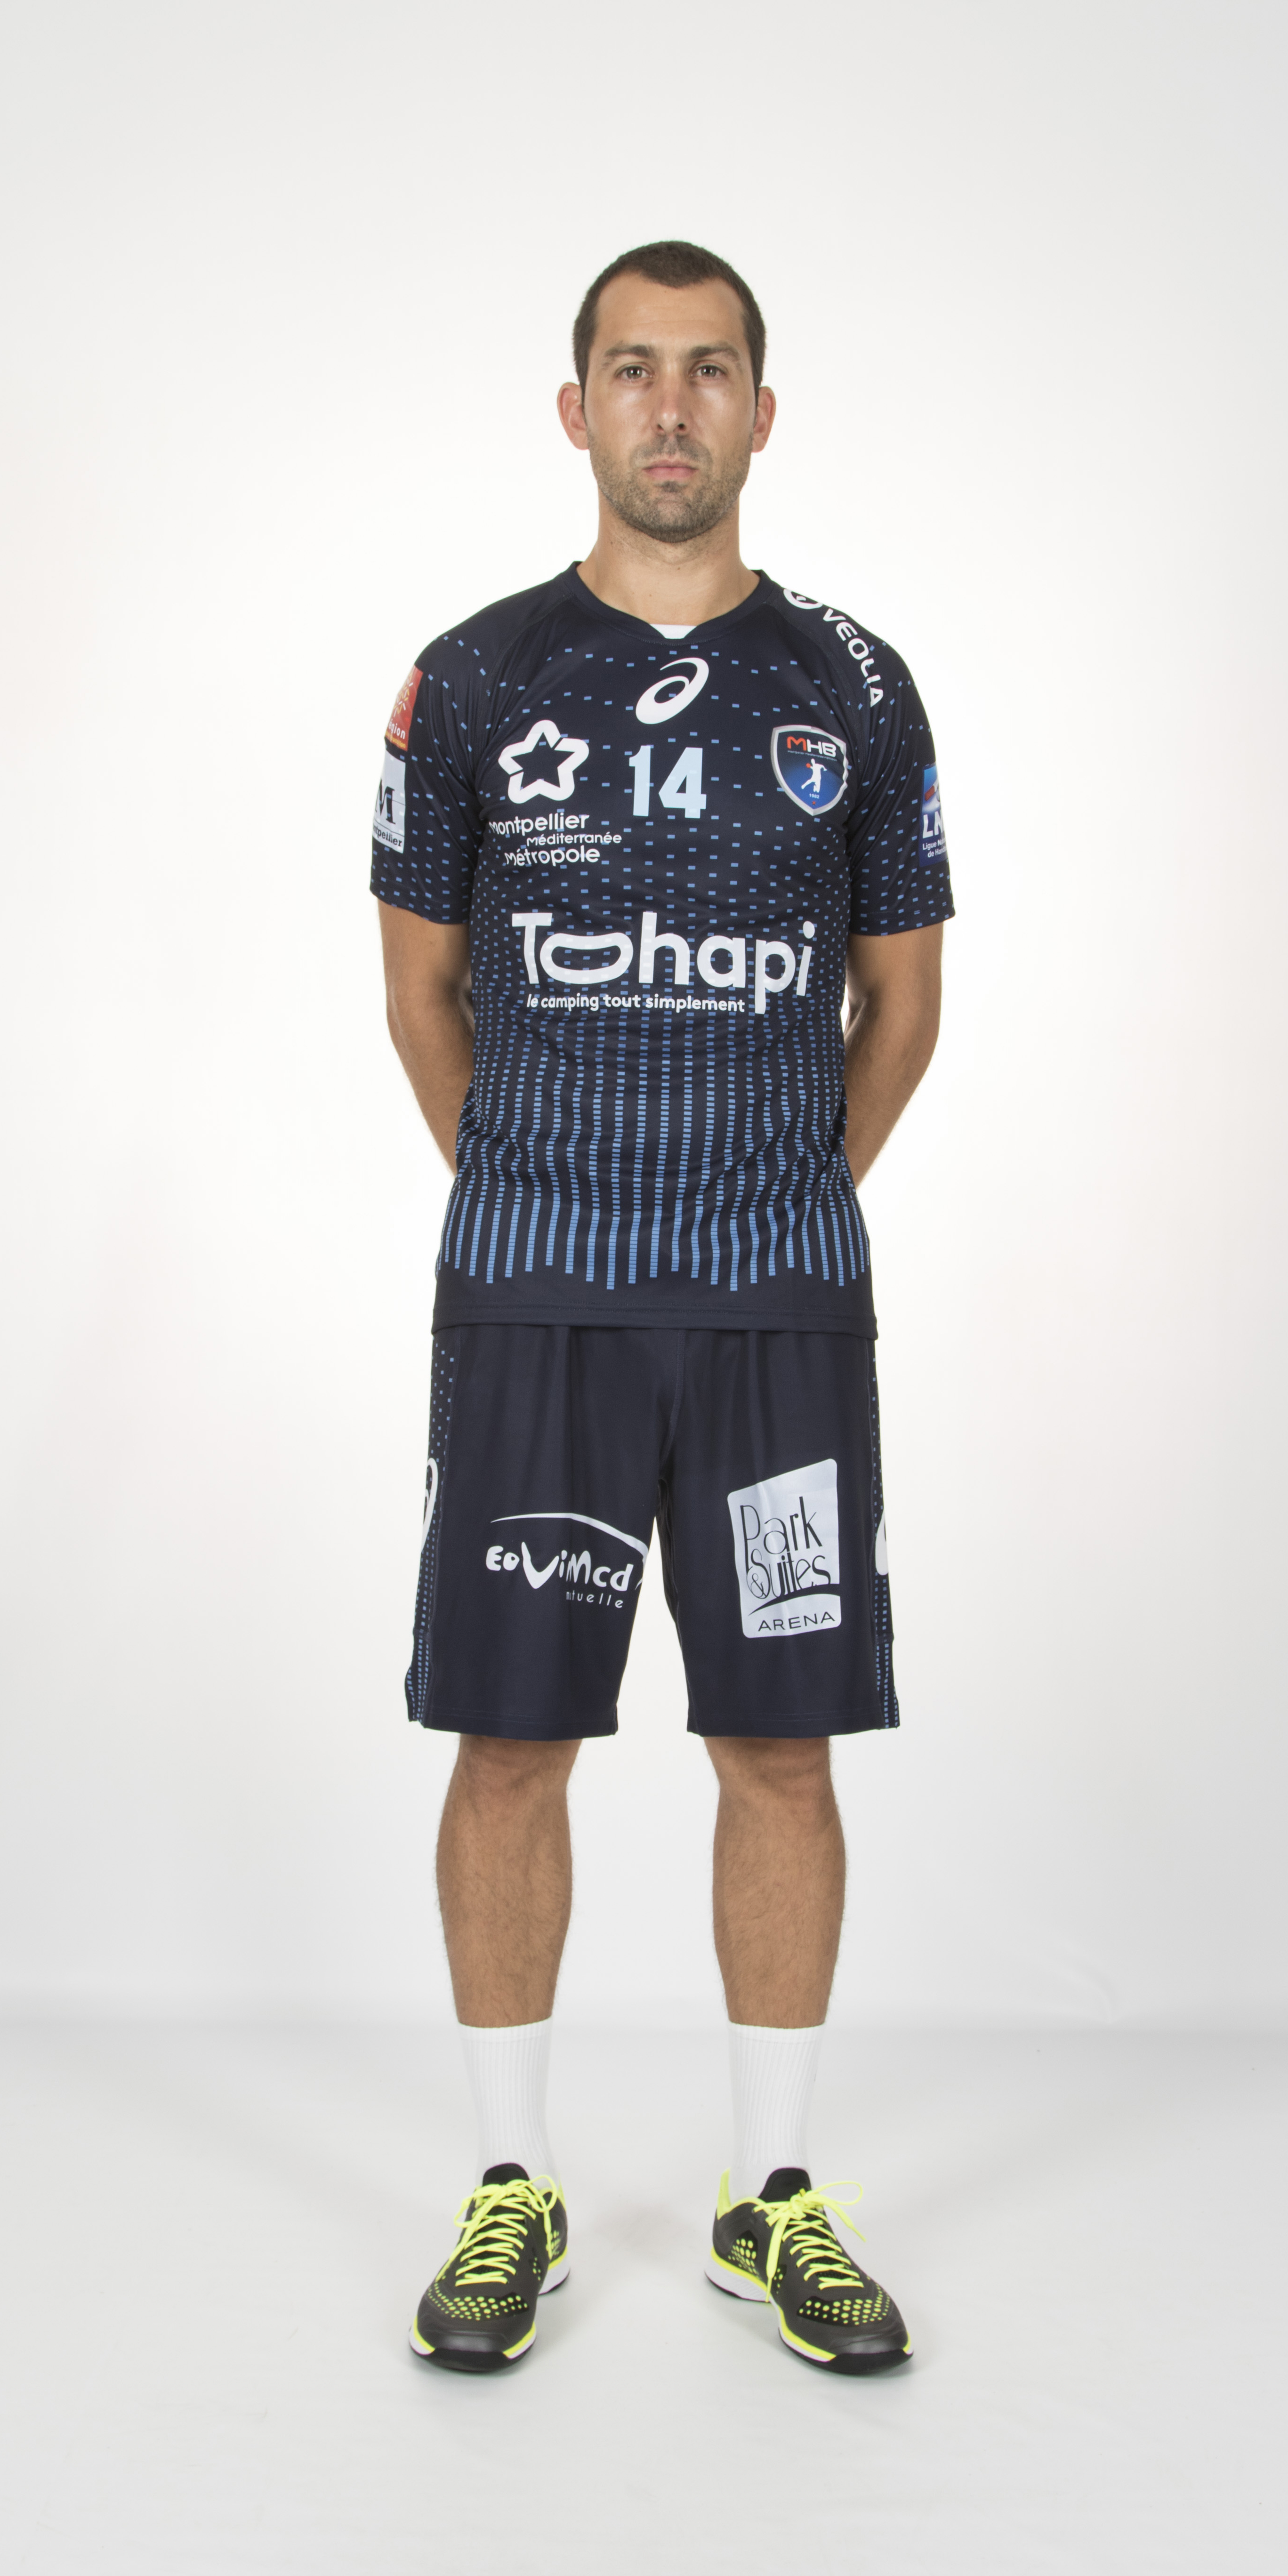 nouveaux maillots montpellier handball 2015 2016 asics. Black Bedroom Furniture Sets. Home Design Ideas